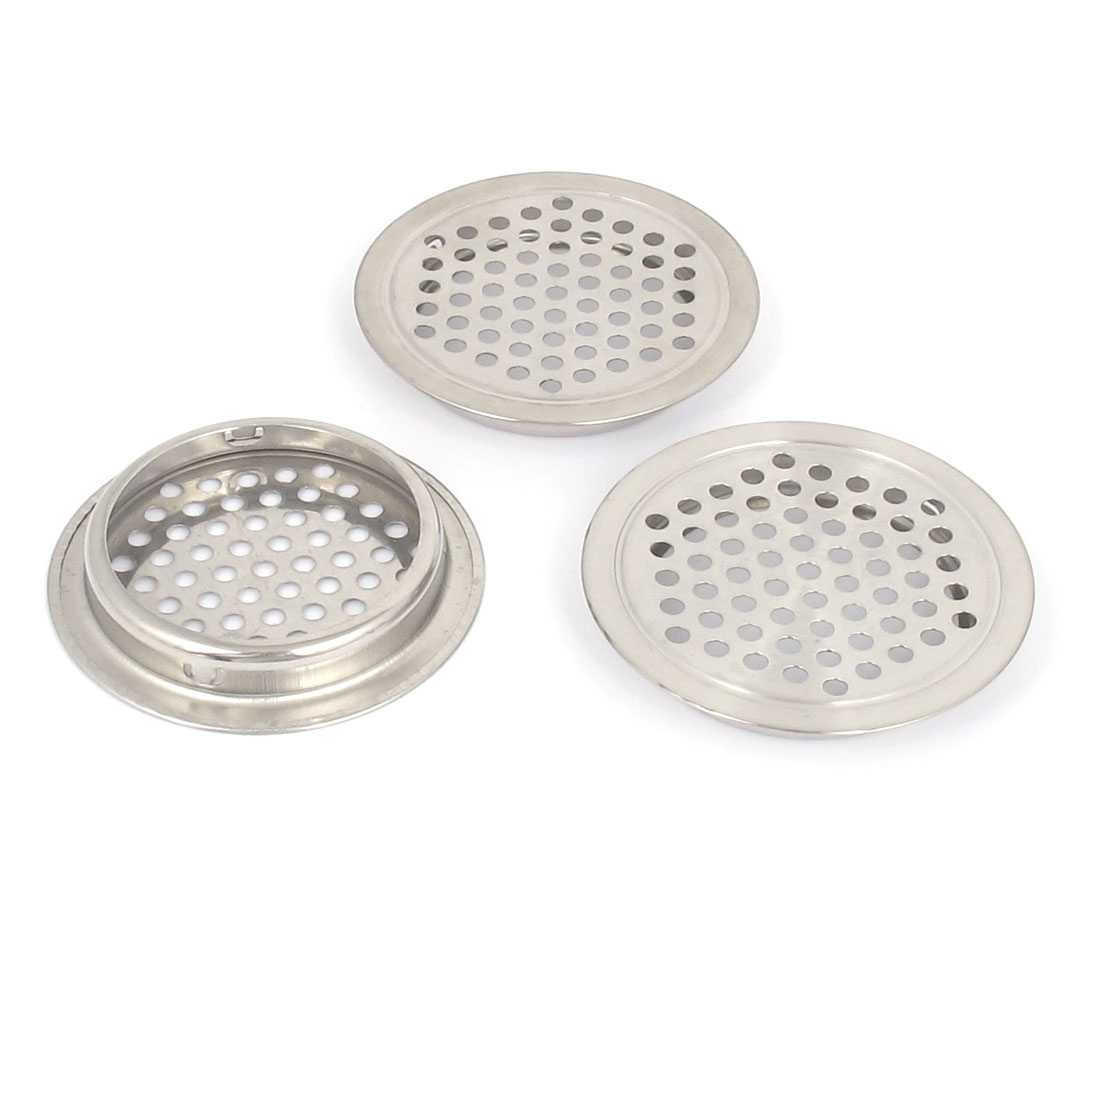 65mm Dia. Stainless Steel Round Mesh Hole Kitchen Cabinet Air Vents Louver 3pcs